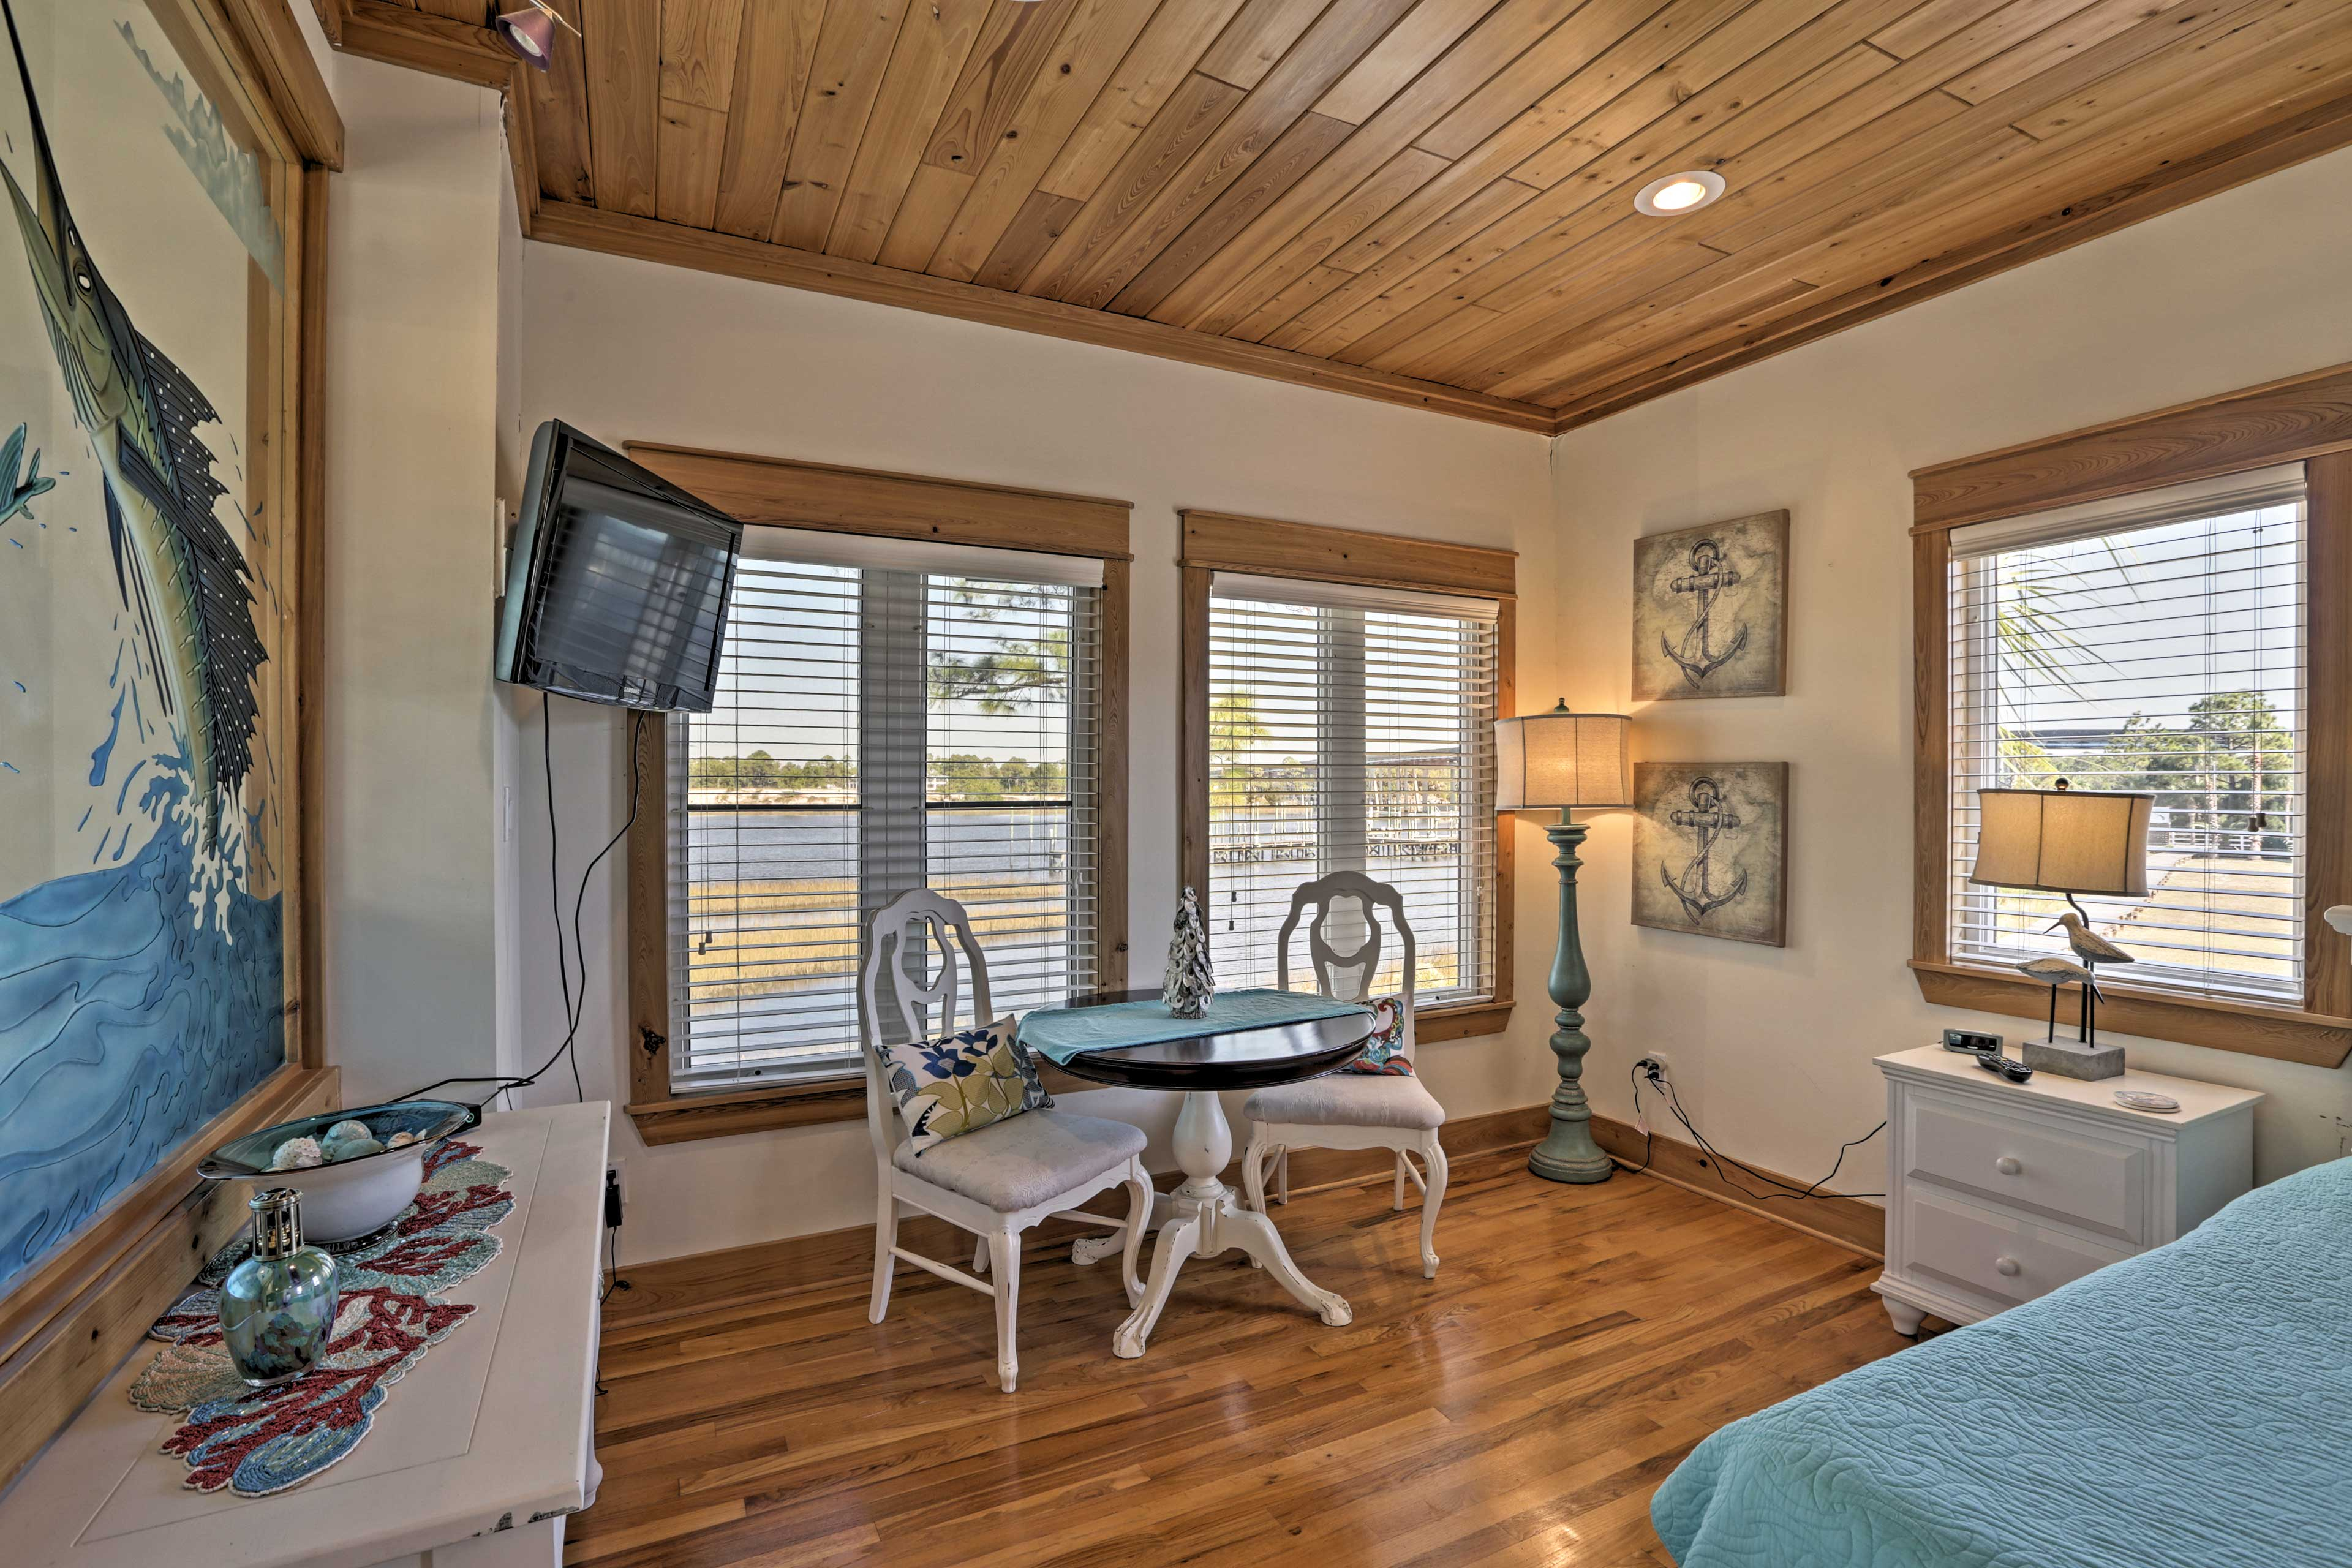 Curl up in the king-sized bed for a good night's sleep and enjoy your morning coffee in this quaint sitting area.